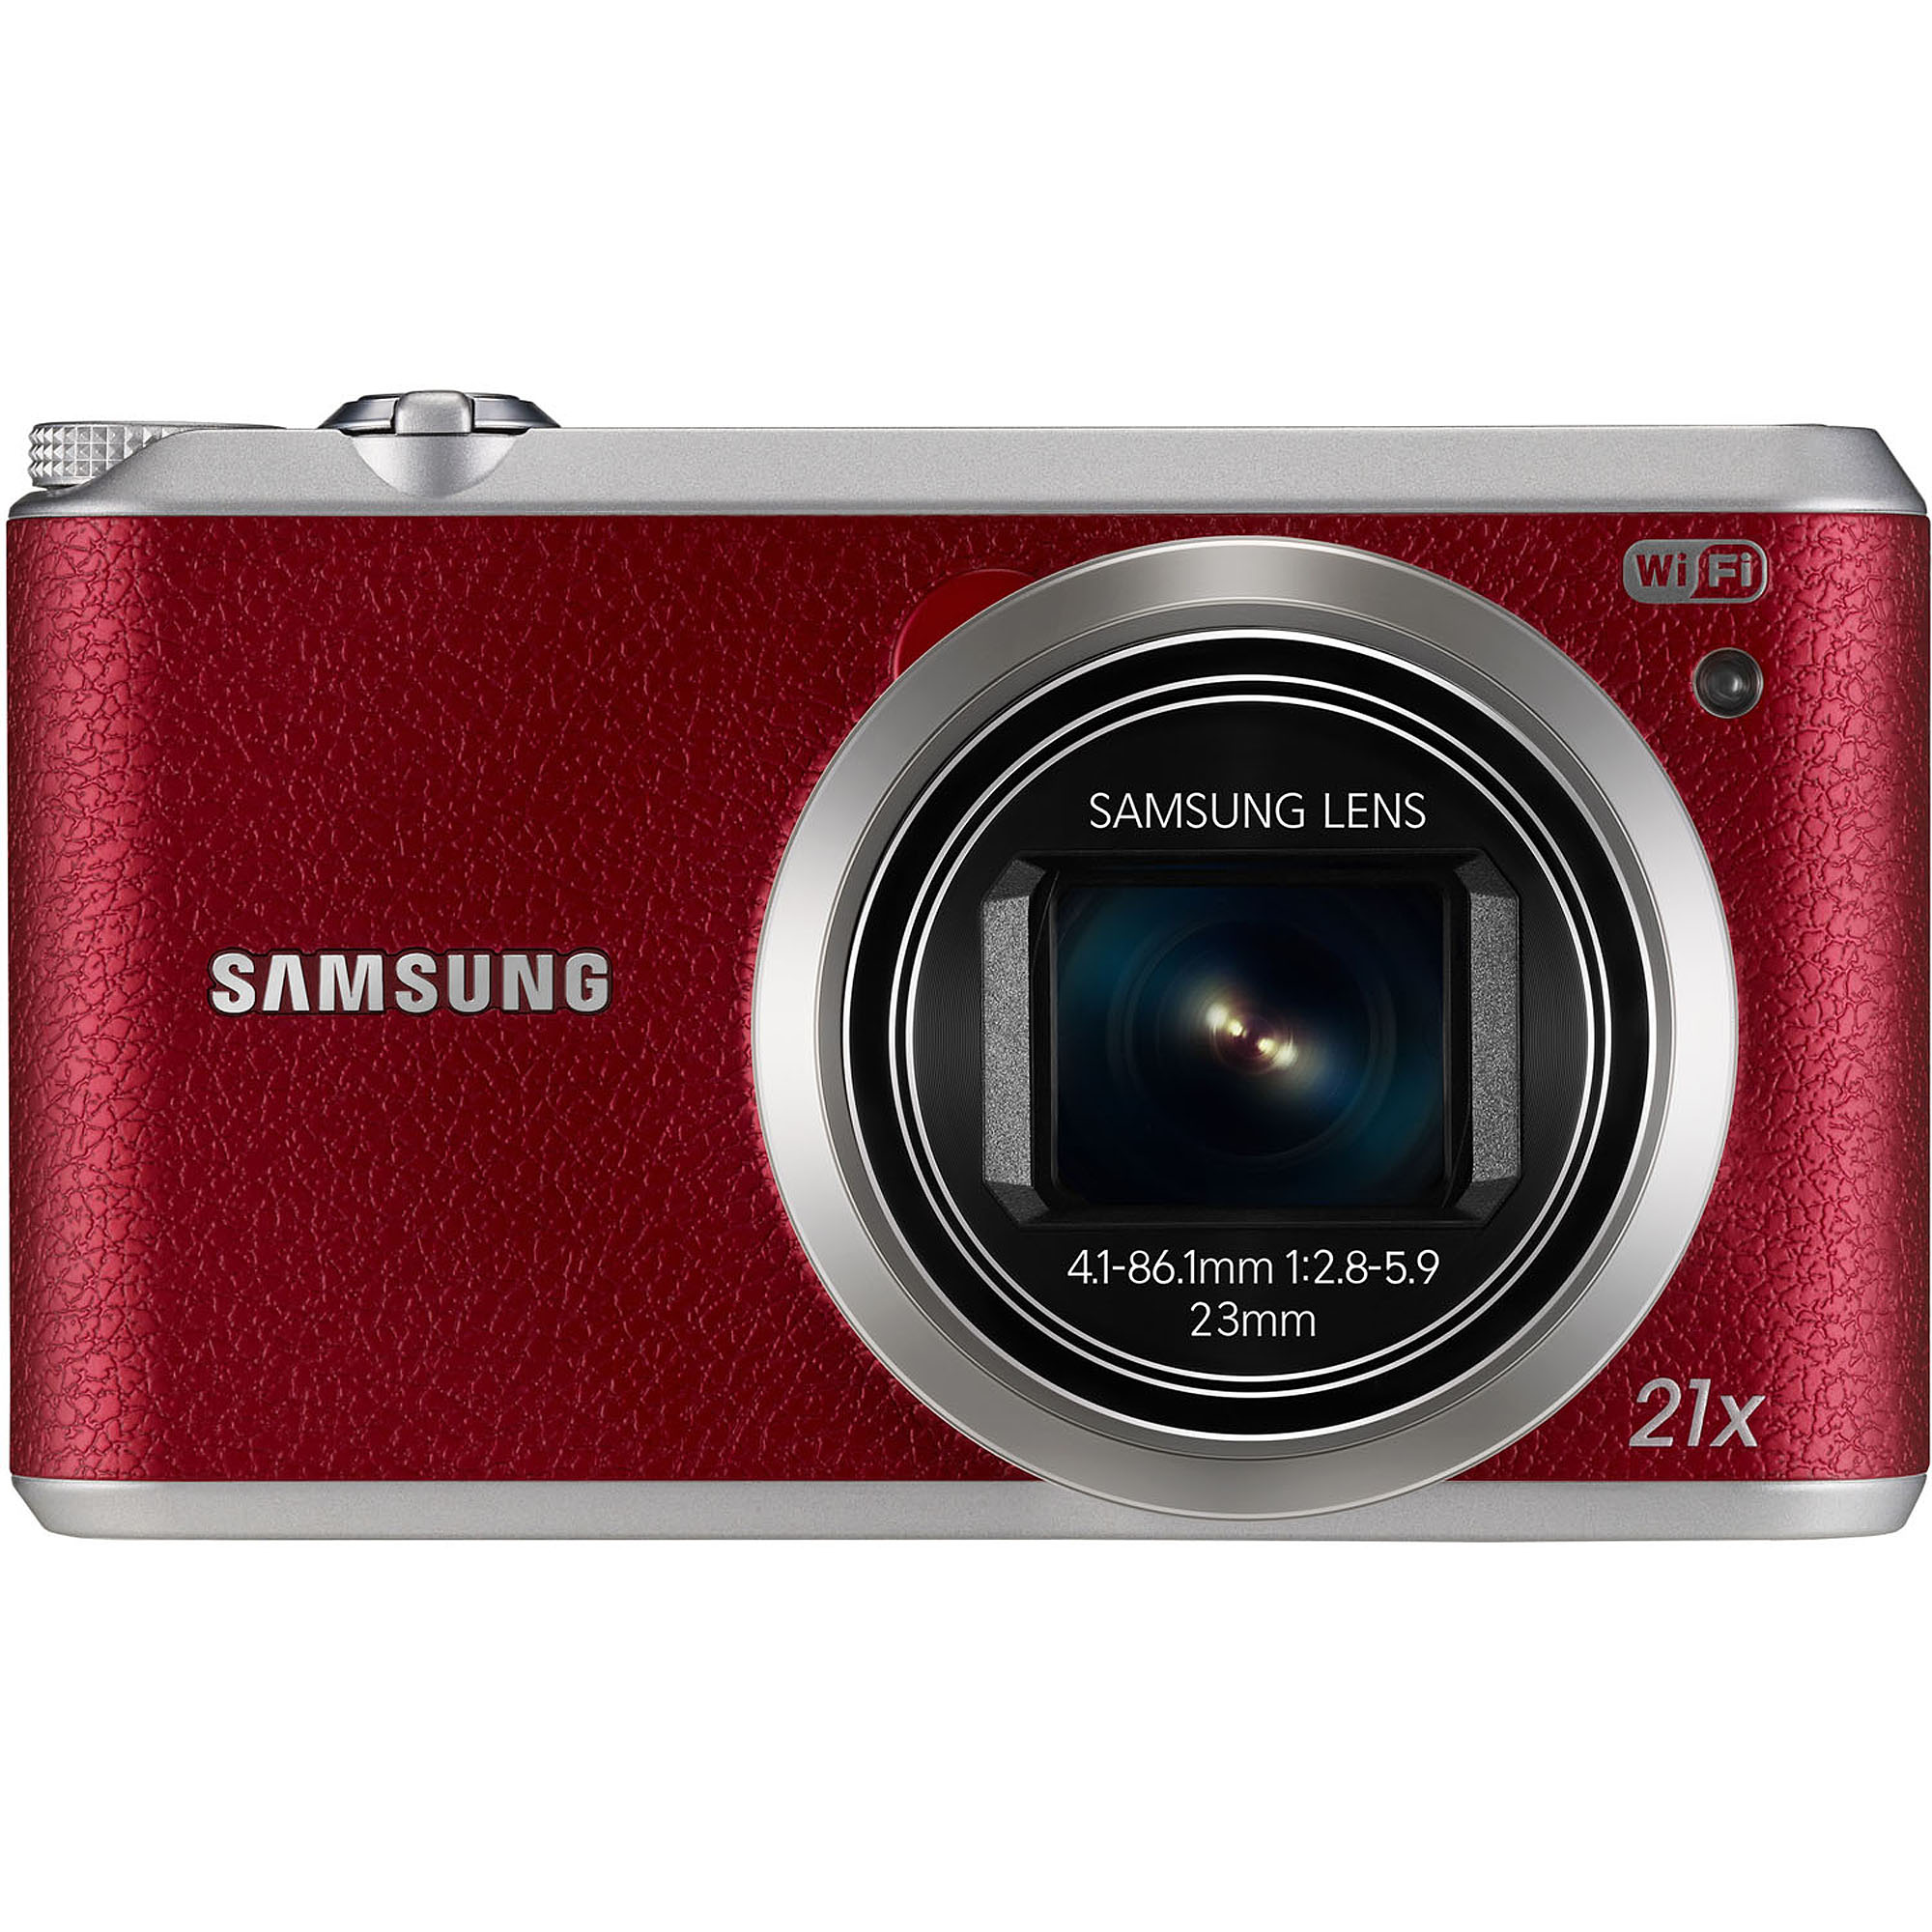 Samsung Red WB350F Digital Camera with 16.3 Megapixels and 21x Optical Zoom